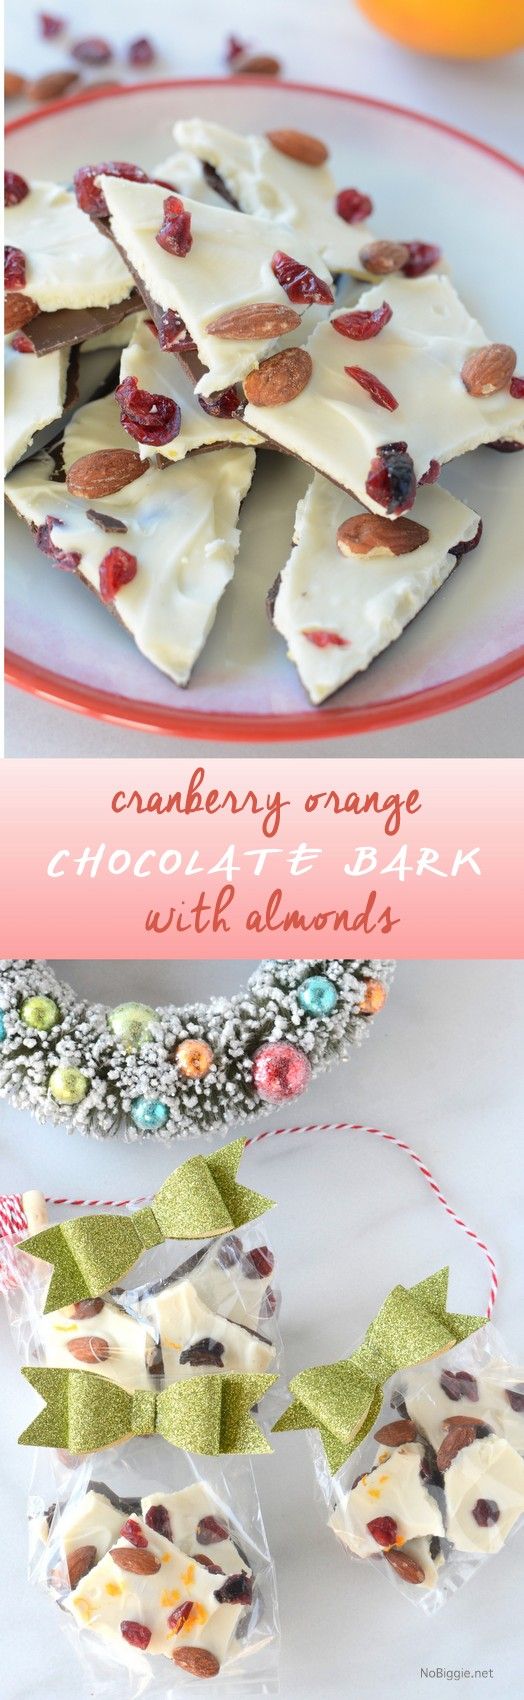 cranberry orange chocolate bark with almonds | so good and so easy! Get the how to on NoBiggie.net